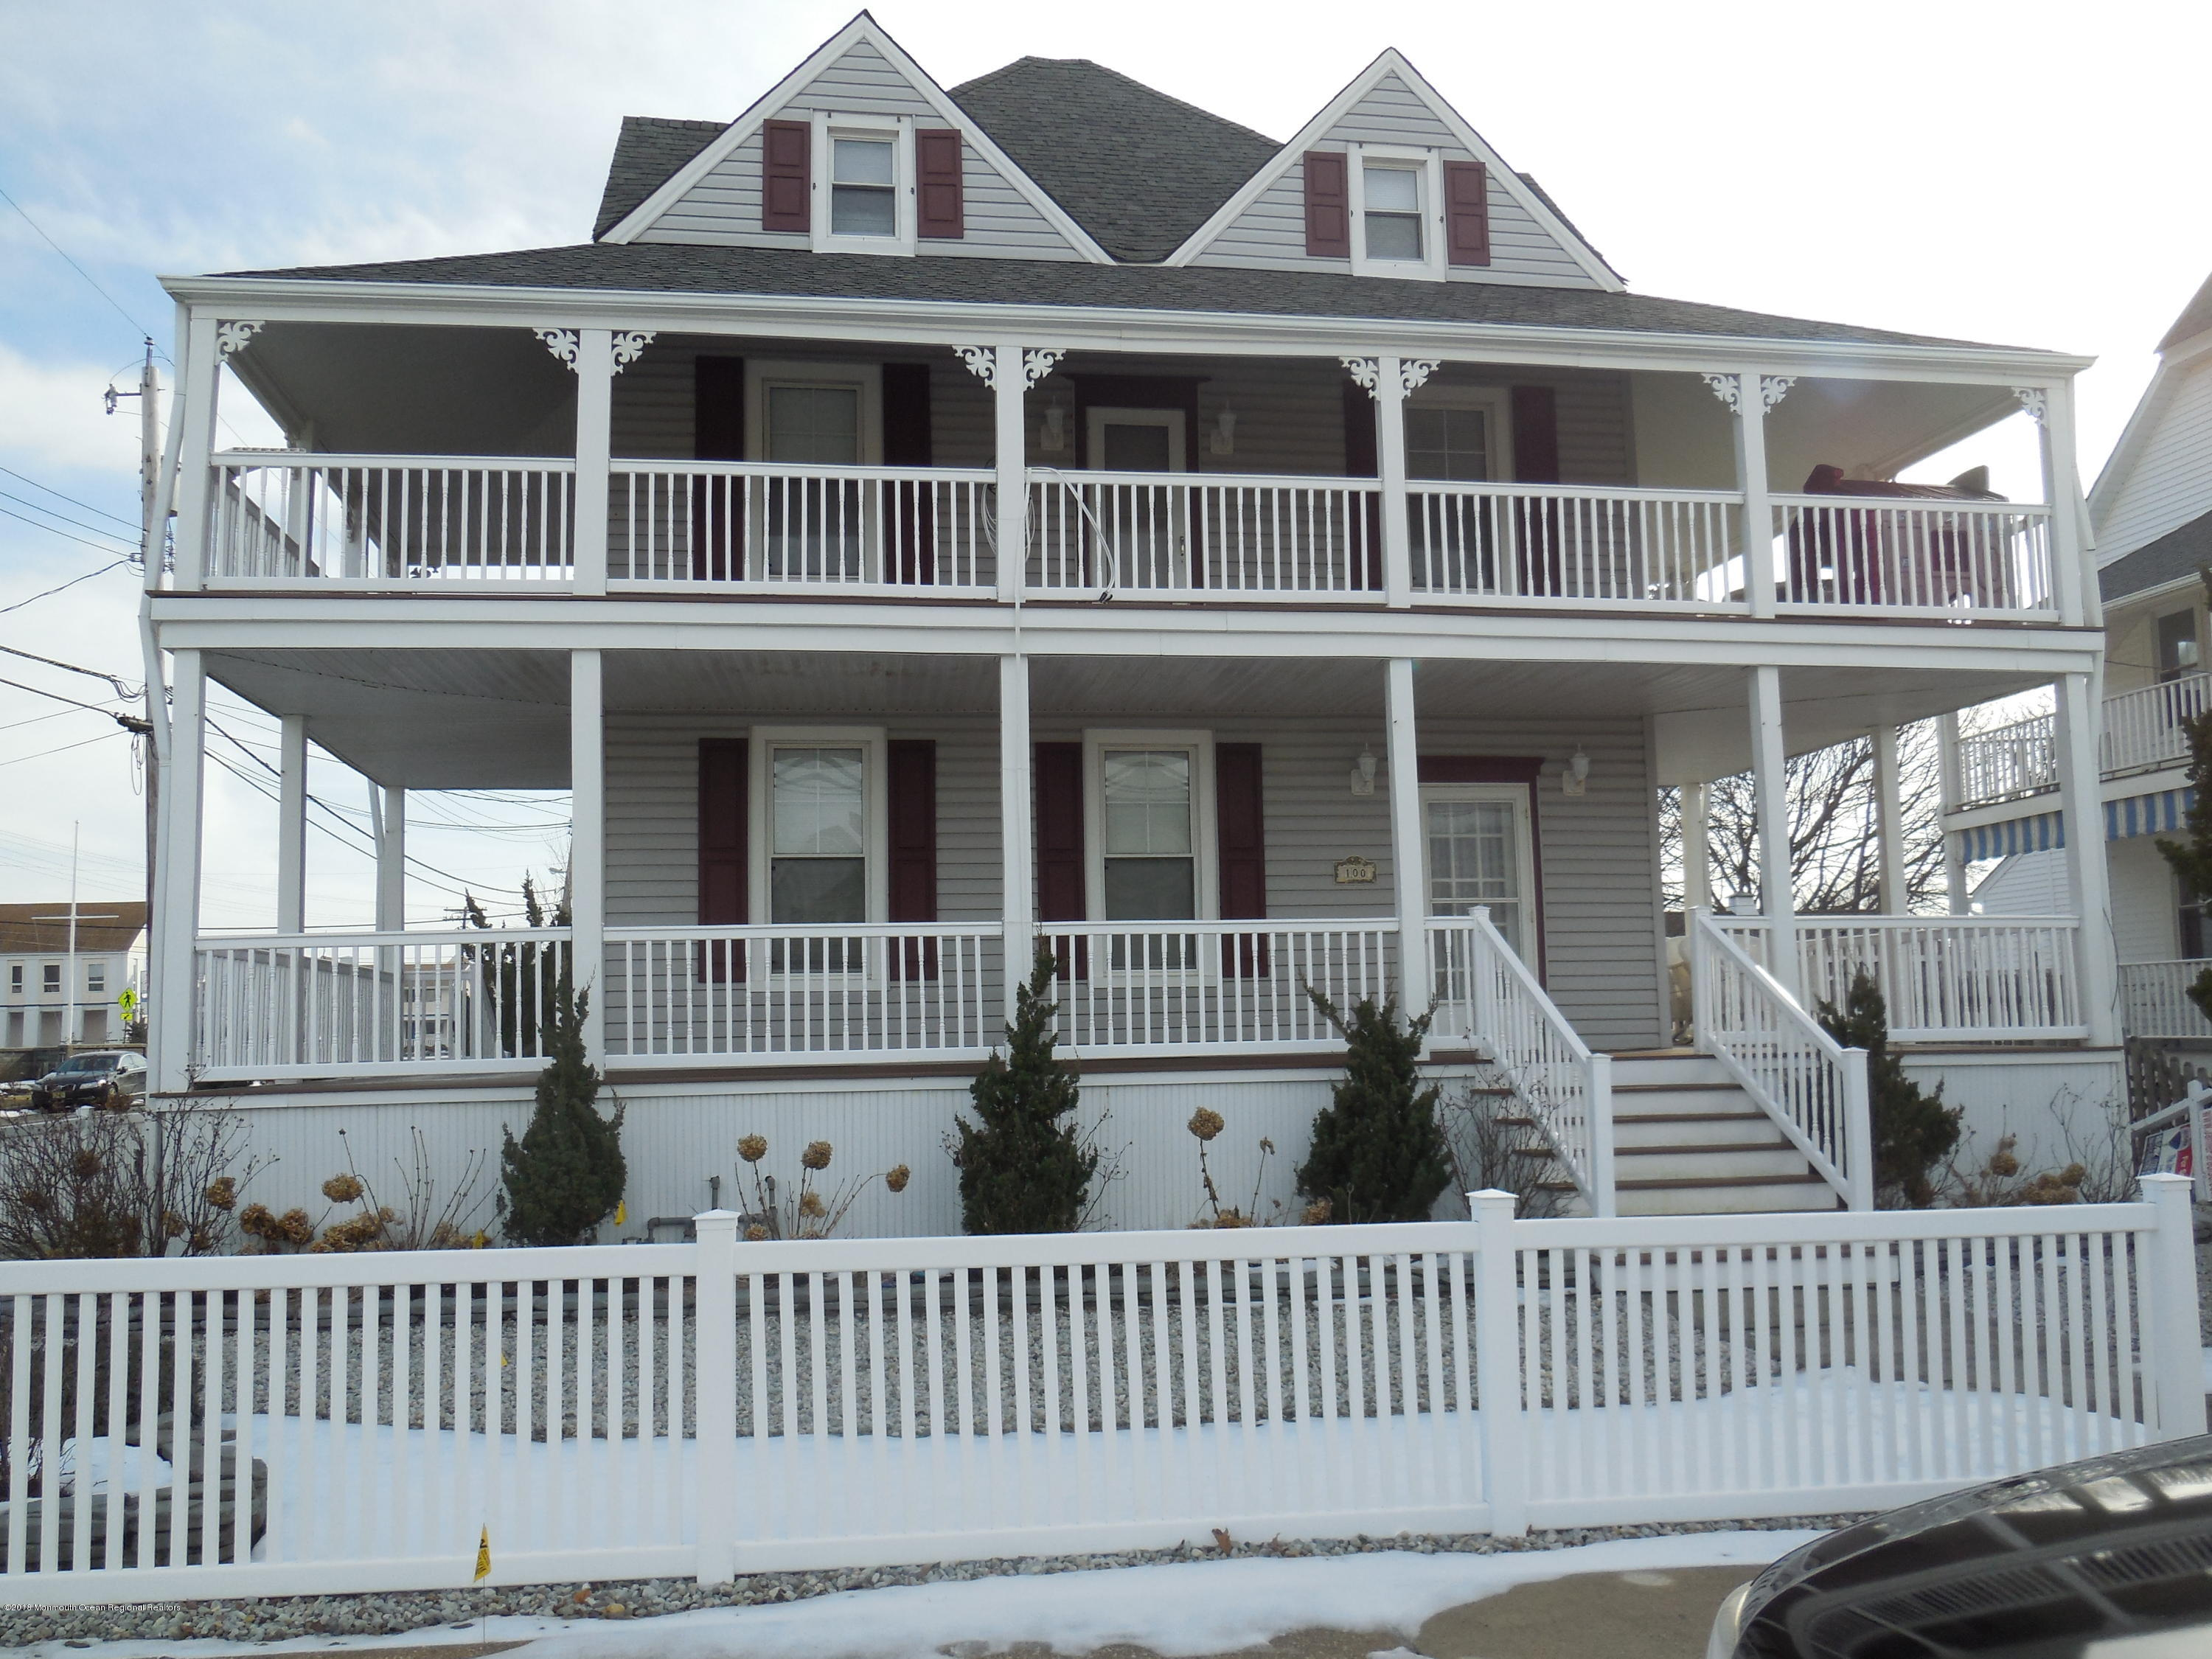 Enjoy the Winter, Spring, Summer and Fall in this magnificent Victorian with 2 wrap-around porches.  This home is only 2 short blocks to the boardwalk & beach.  Soak in the ocean views and breezes from the open porches.  A total of 5 bedrooms, 4 have queen beds.  The 5th bedroom has twin beds.  There is a full size futon in the third floor living room.  In all the home sleeps 12.  There are living rooms on each of the 3 levels.  There are full bathrooms on all levels. A tub/shower on level 1 and stall showers on levels 2 & 3.  The first & second floors  have fully equip kitchens with dining areas plus washers & dryers which makes it perfect for extended families & friends.  Rental prices vary seasonally. Short term rentals are preferred.  Listing price is the 2019's Summer rate per week.